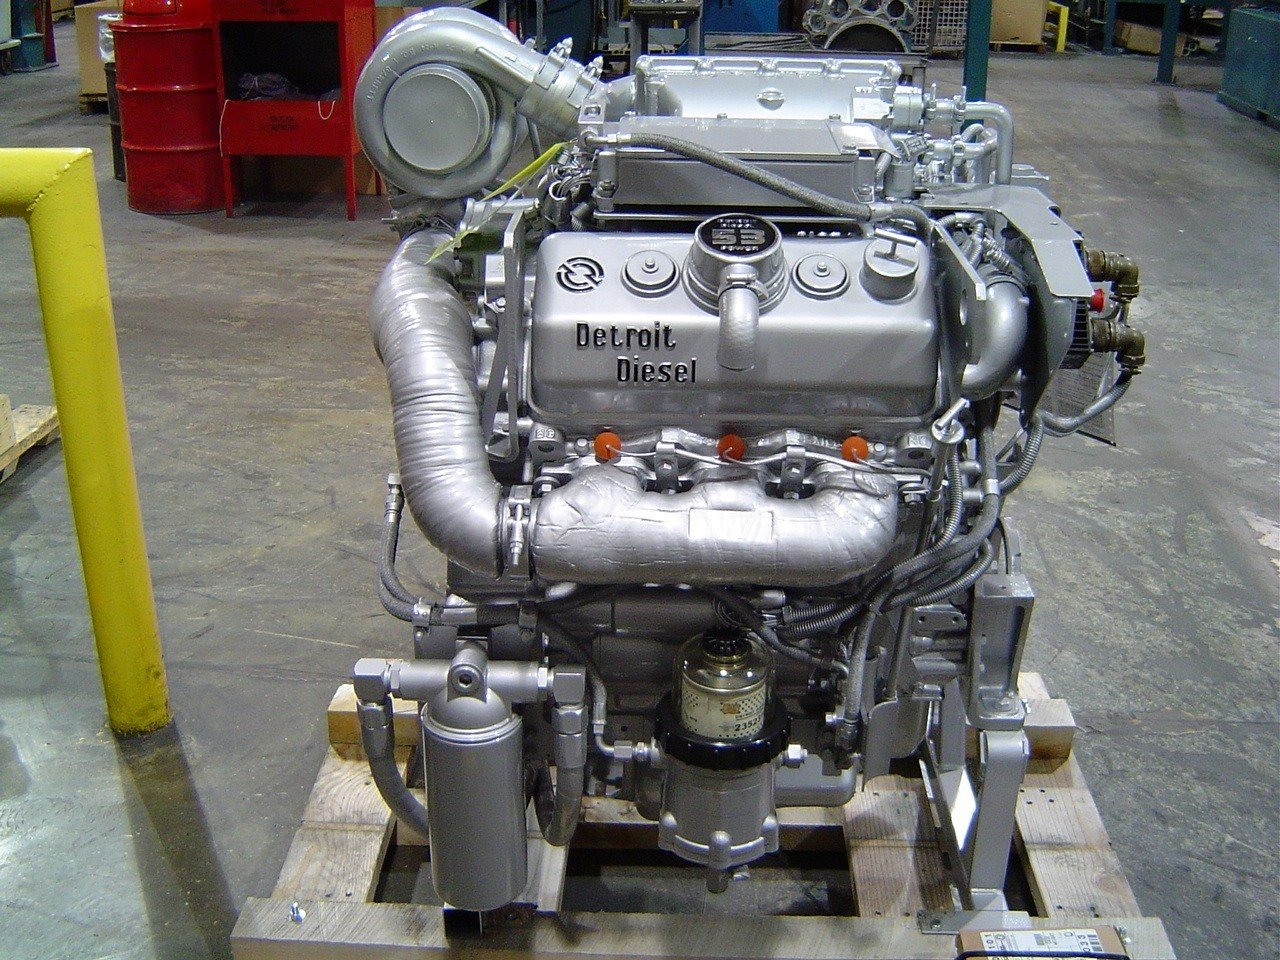 New 2 Stroke Diesel Engine Features A Supercharger And